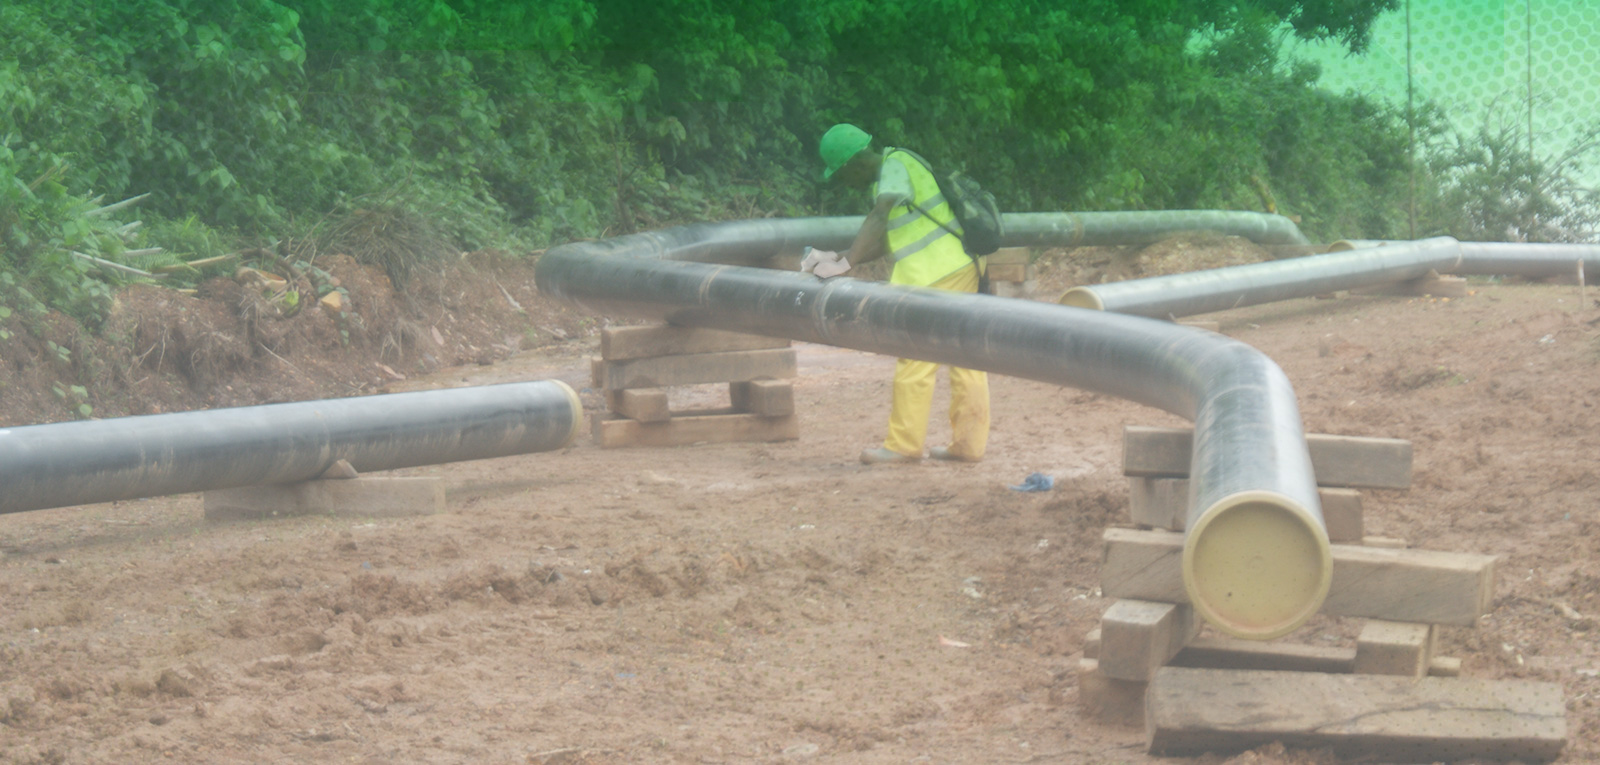 Invitation to Tender for the project management of a gas pipeline construction project in Bipaga, via Kribi